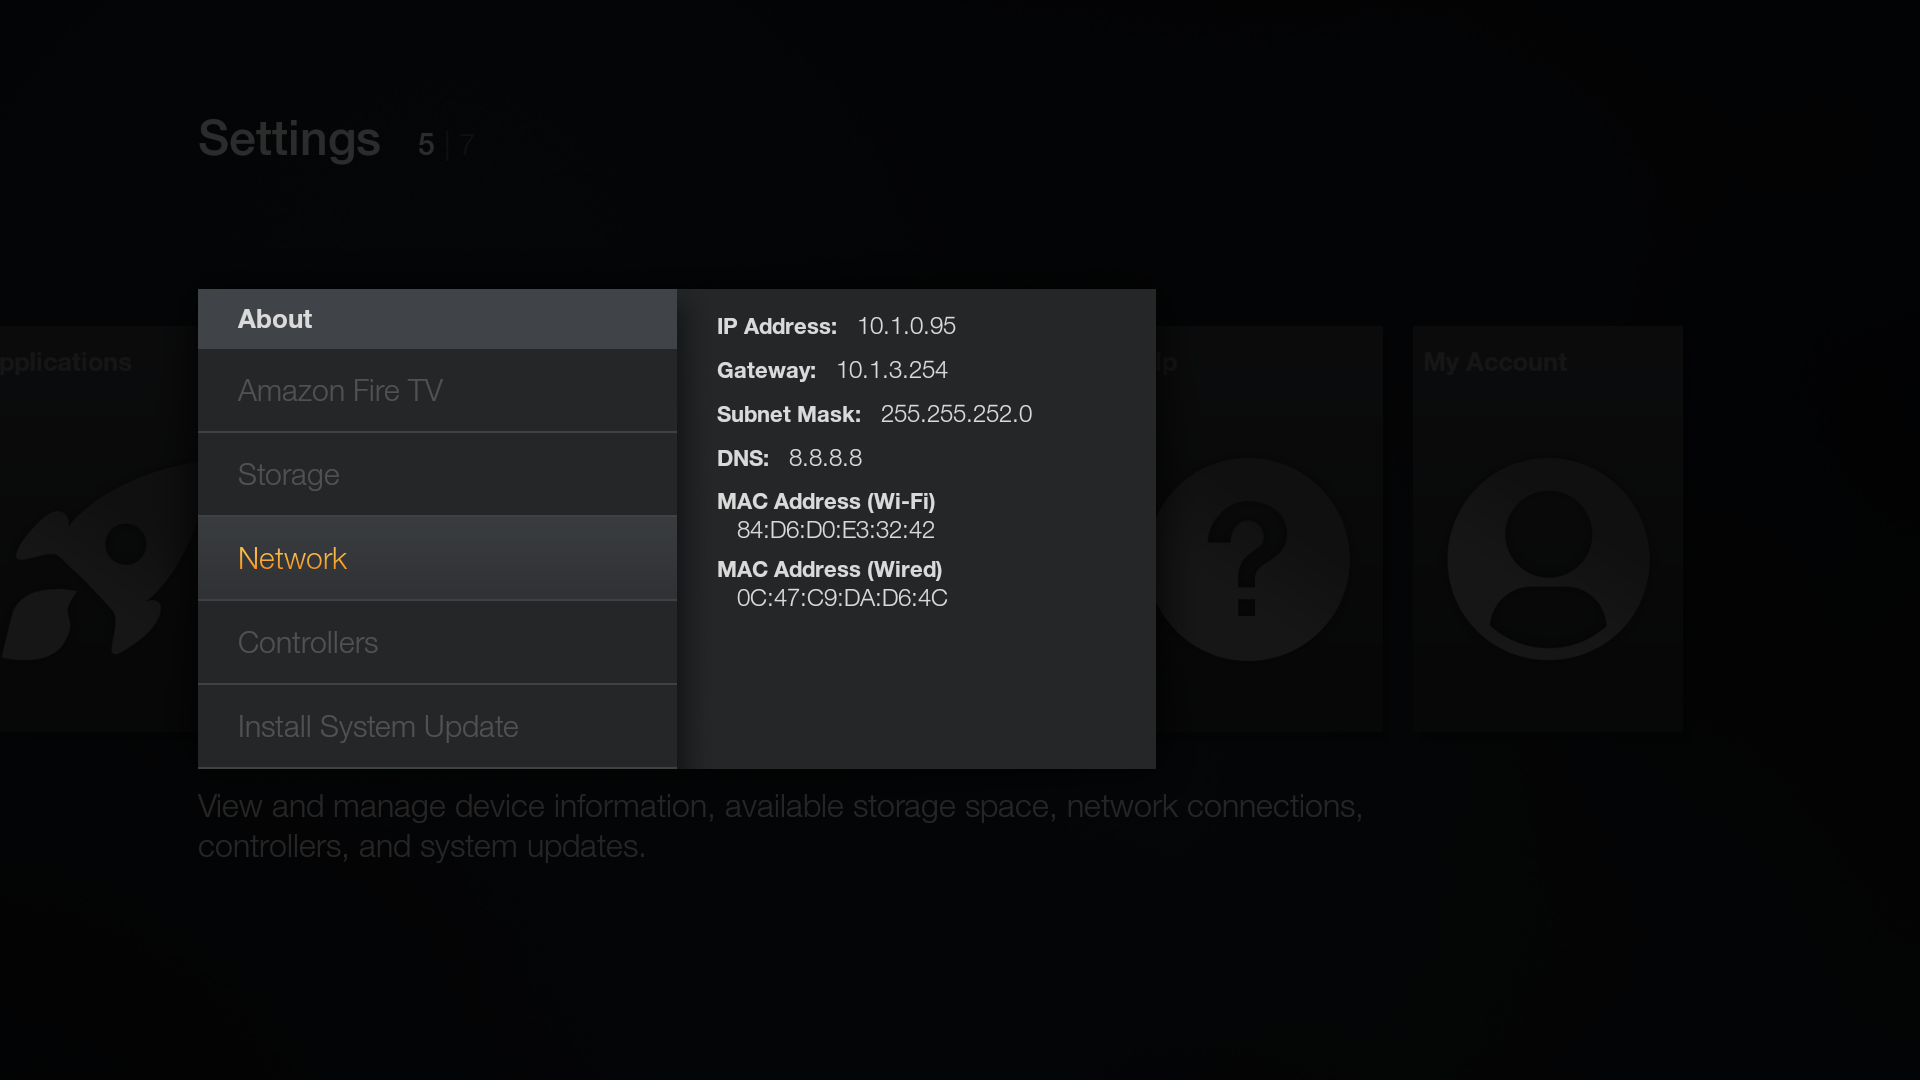 Get the IP of Fire TV